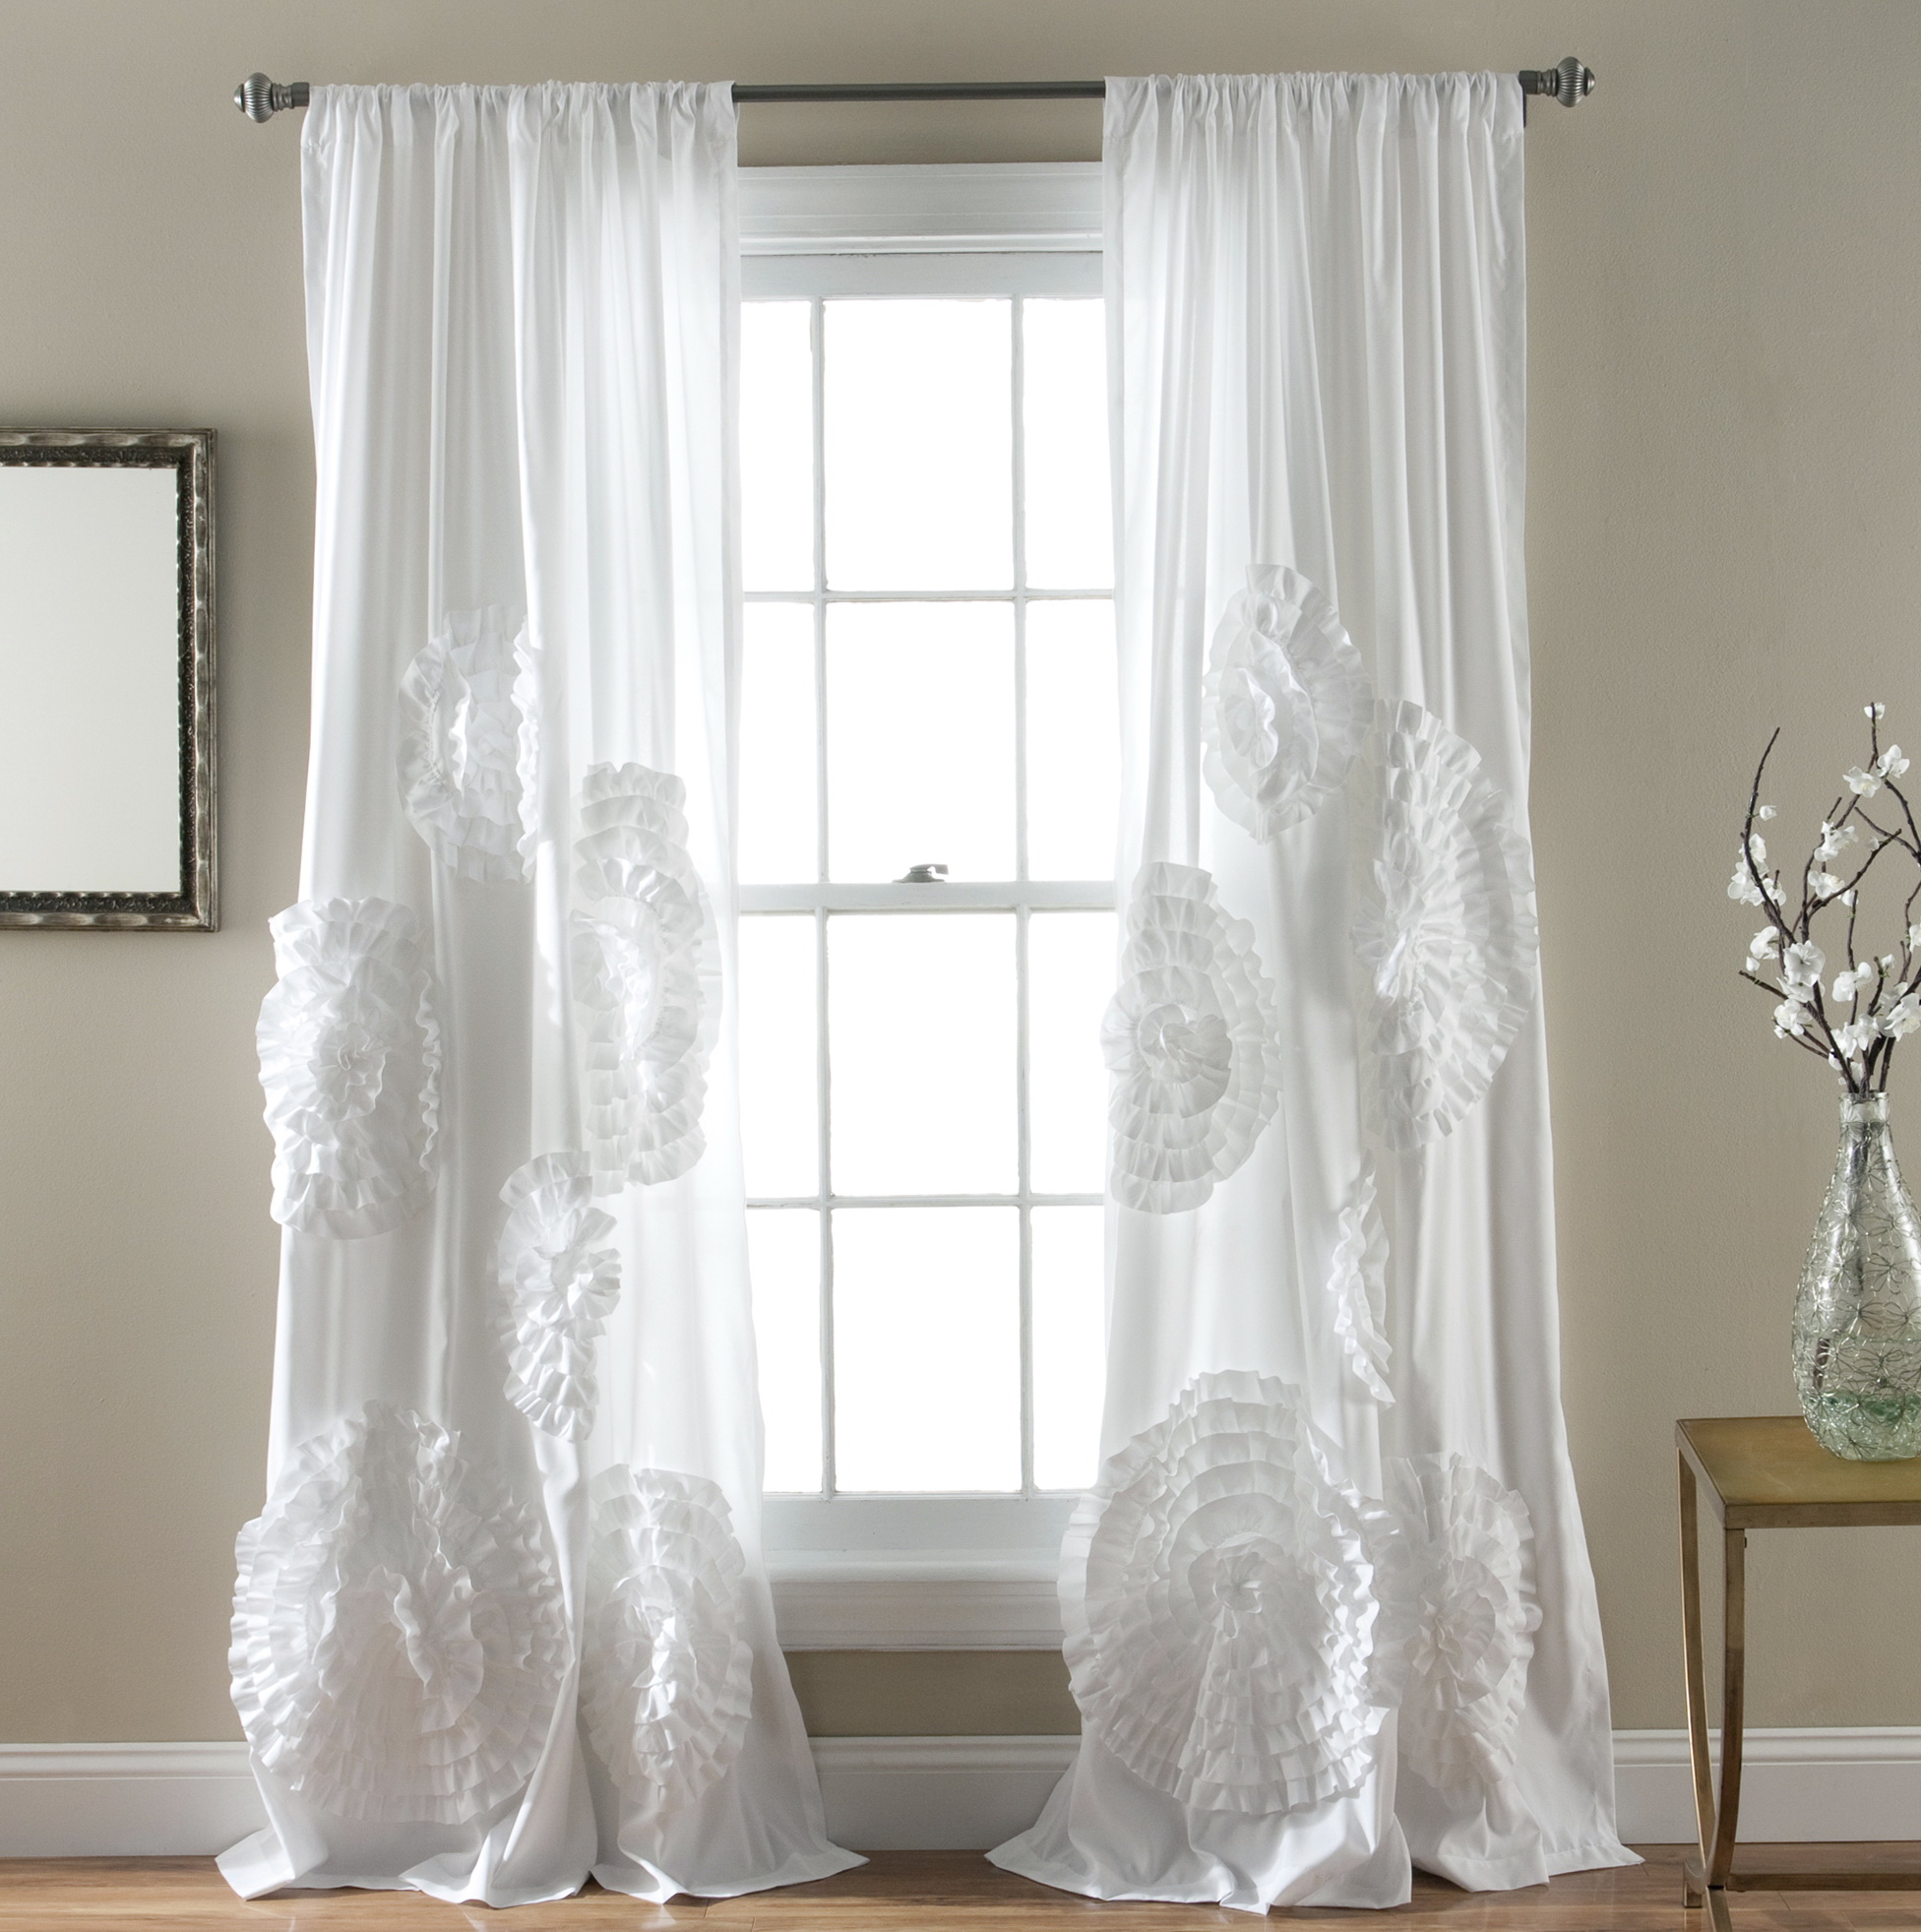 Where To Buy Curtains In Houston